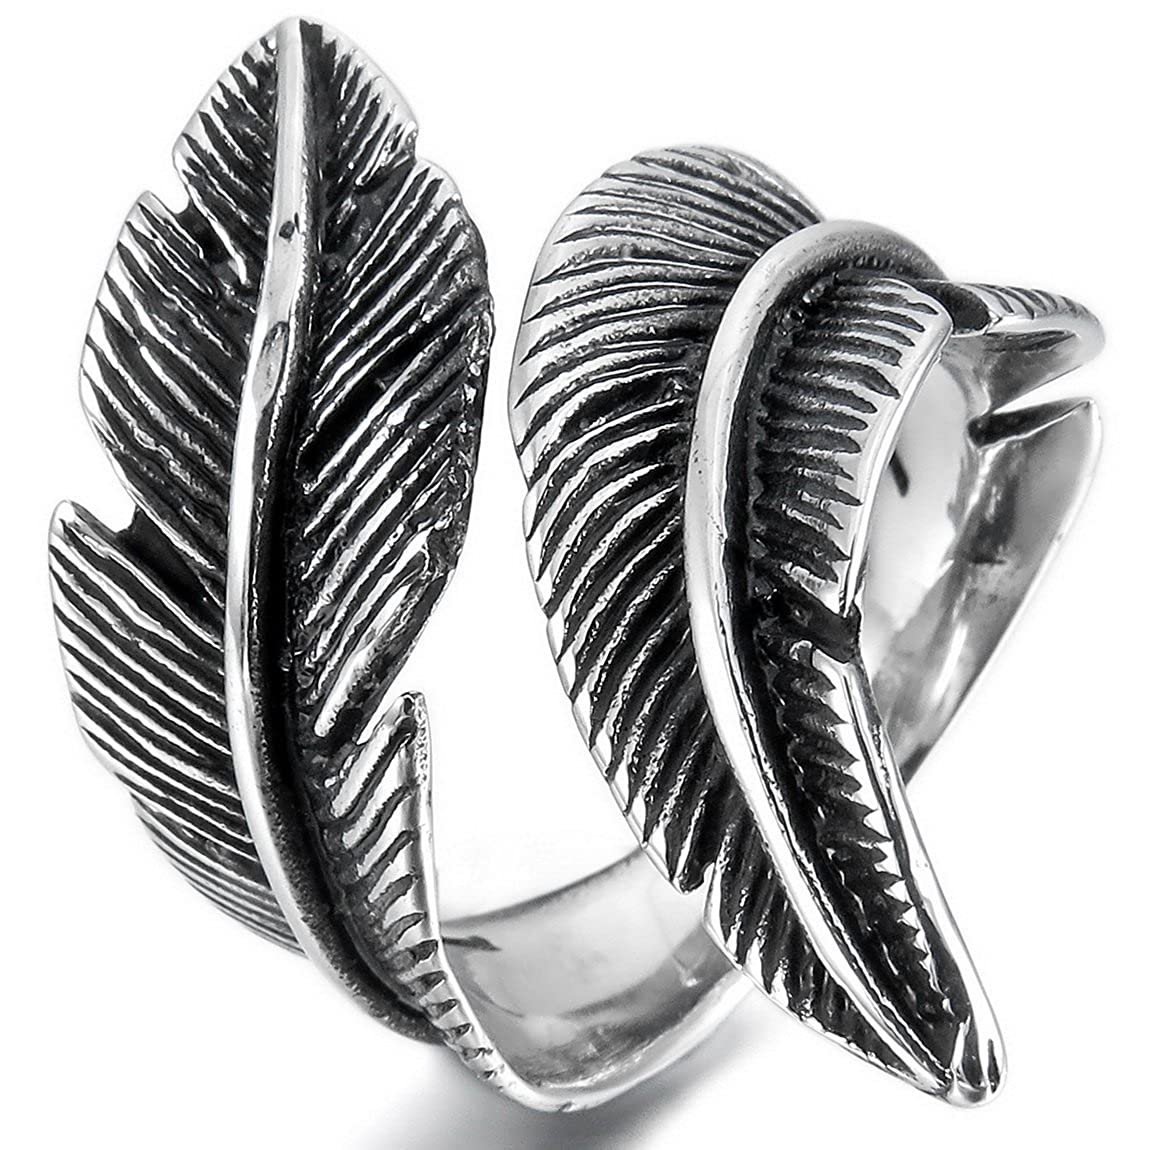 INBLUE Men,Women's Stainless Steel Ring Black Silver Tone Feather INBLUE Jewelry mne928-parent